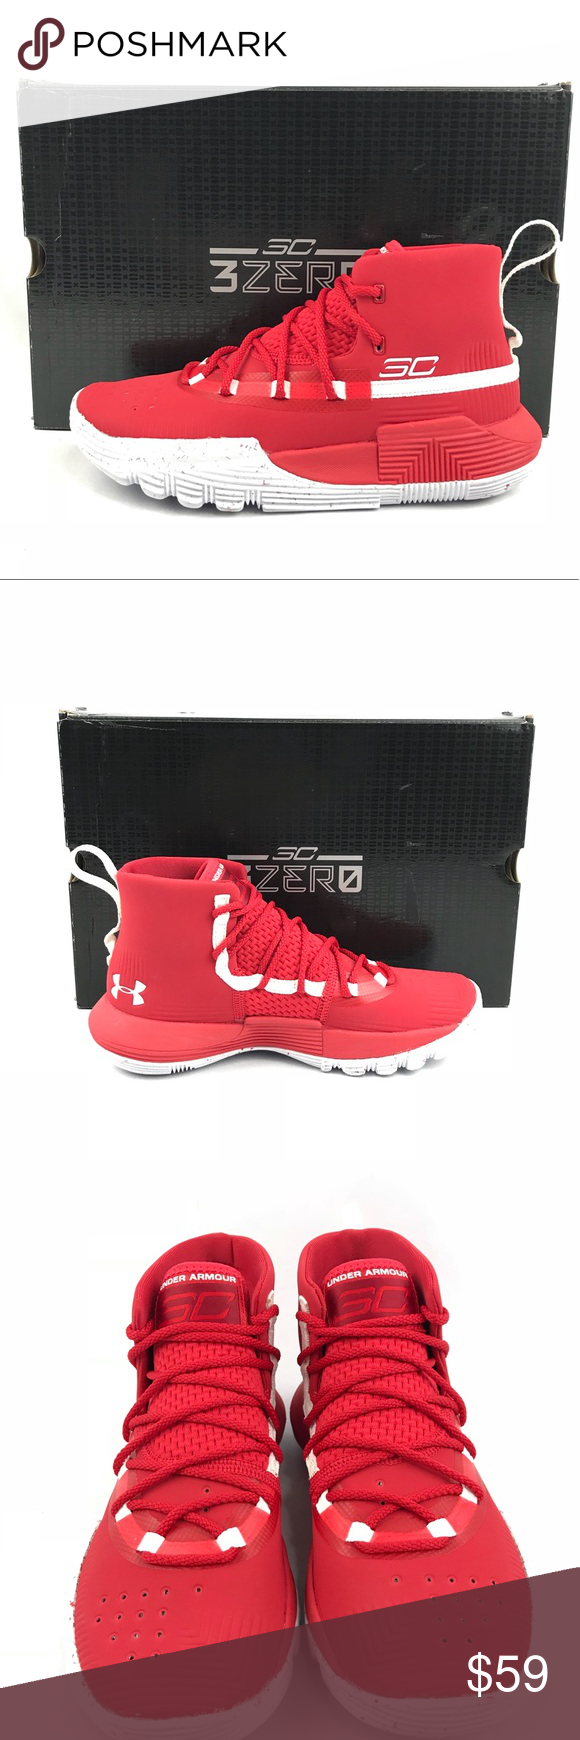 promo code 2a920 70556 Under Armour 3Zero II (GS) Sz. 4 Red Rouge NIB Brand new in ...